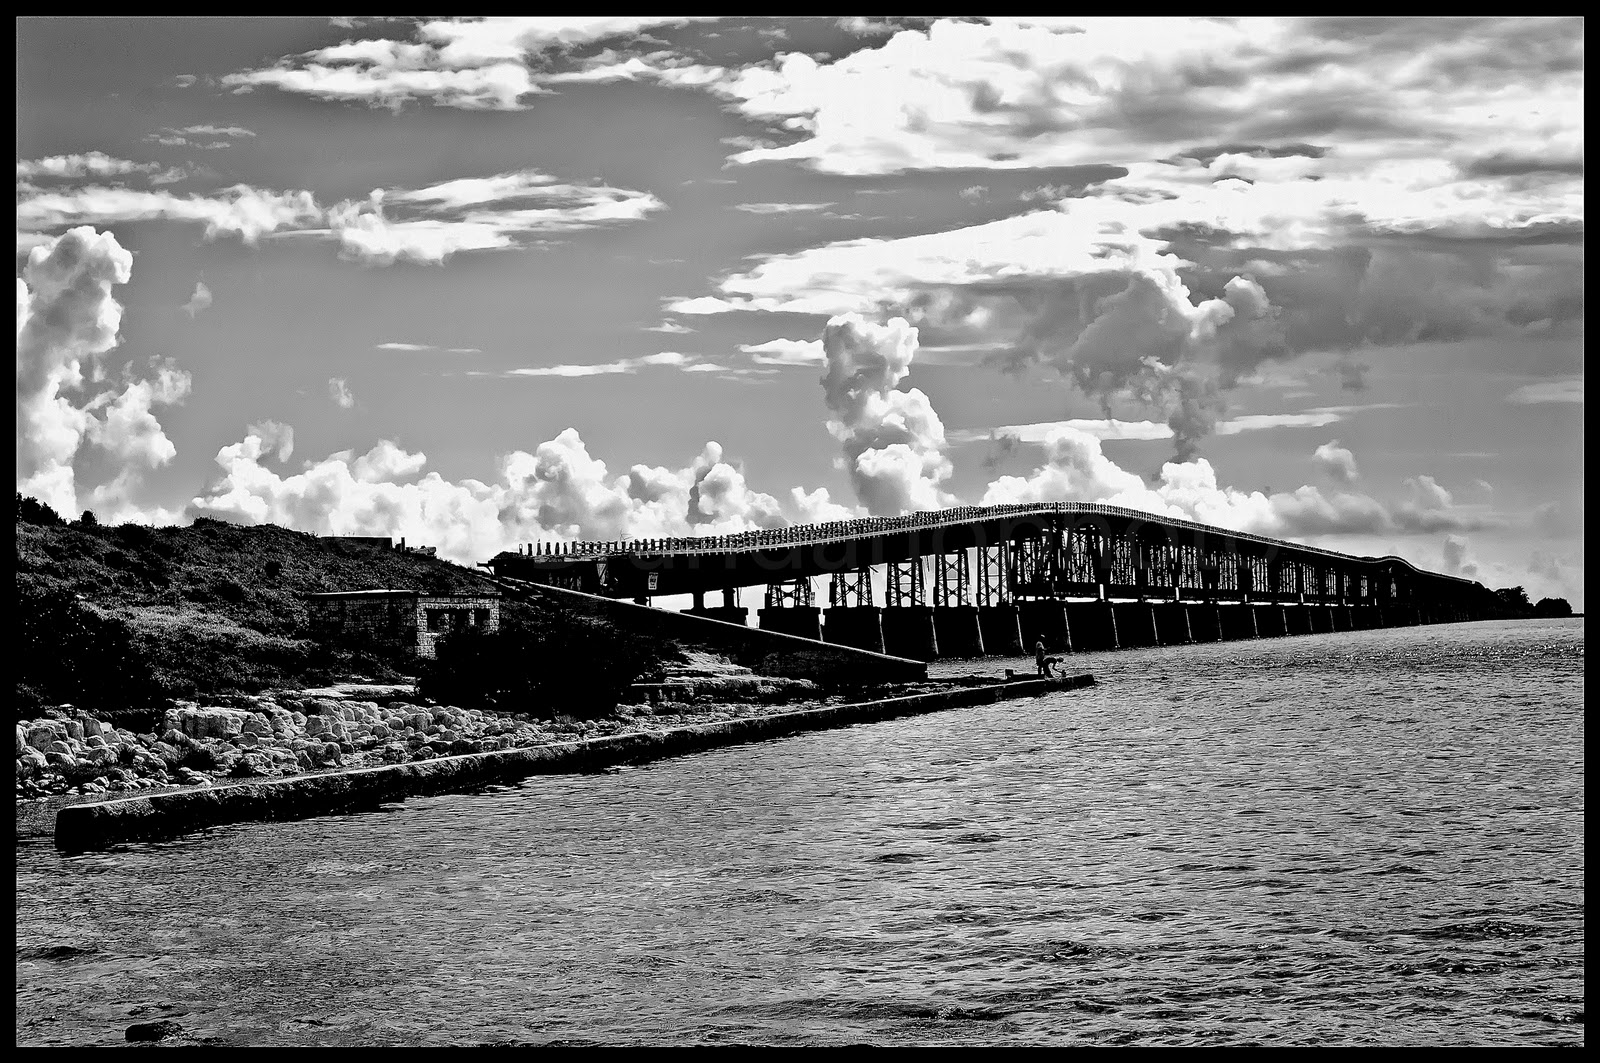 JP BRANDANO FLORIDAS FINE ART PHOTOGRAPHERS PHOTOGRAPHING OUR ROAD TRIP TO KEY WEST Part One